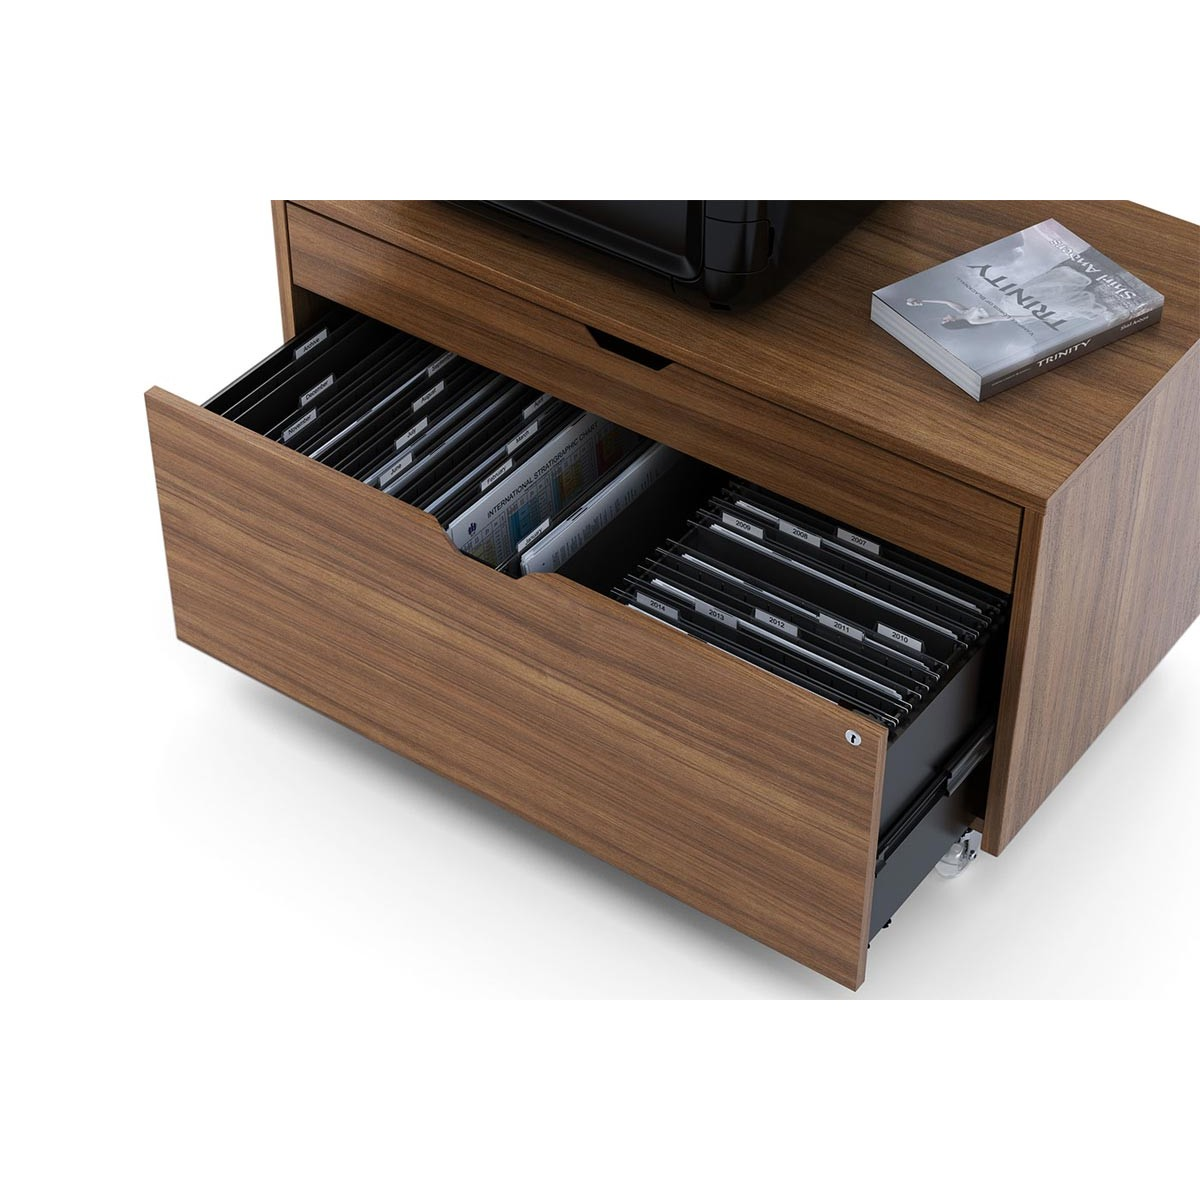 Hanging Desk Drawer Organizer Rub11916